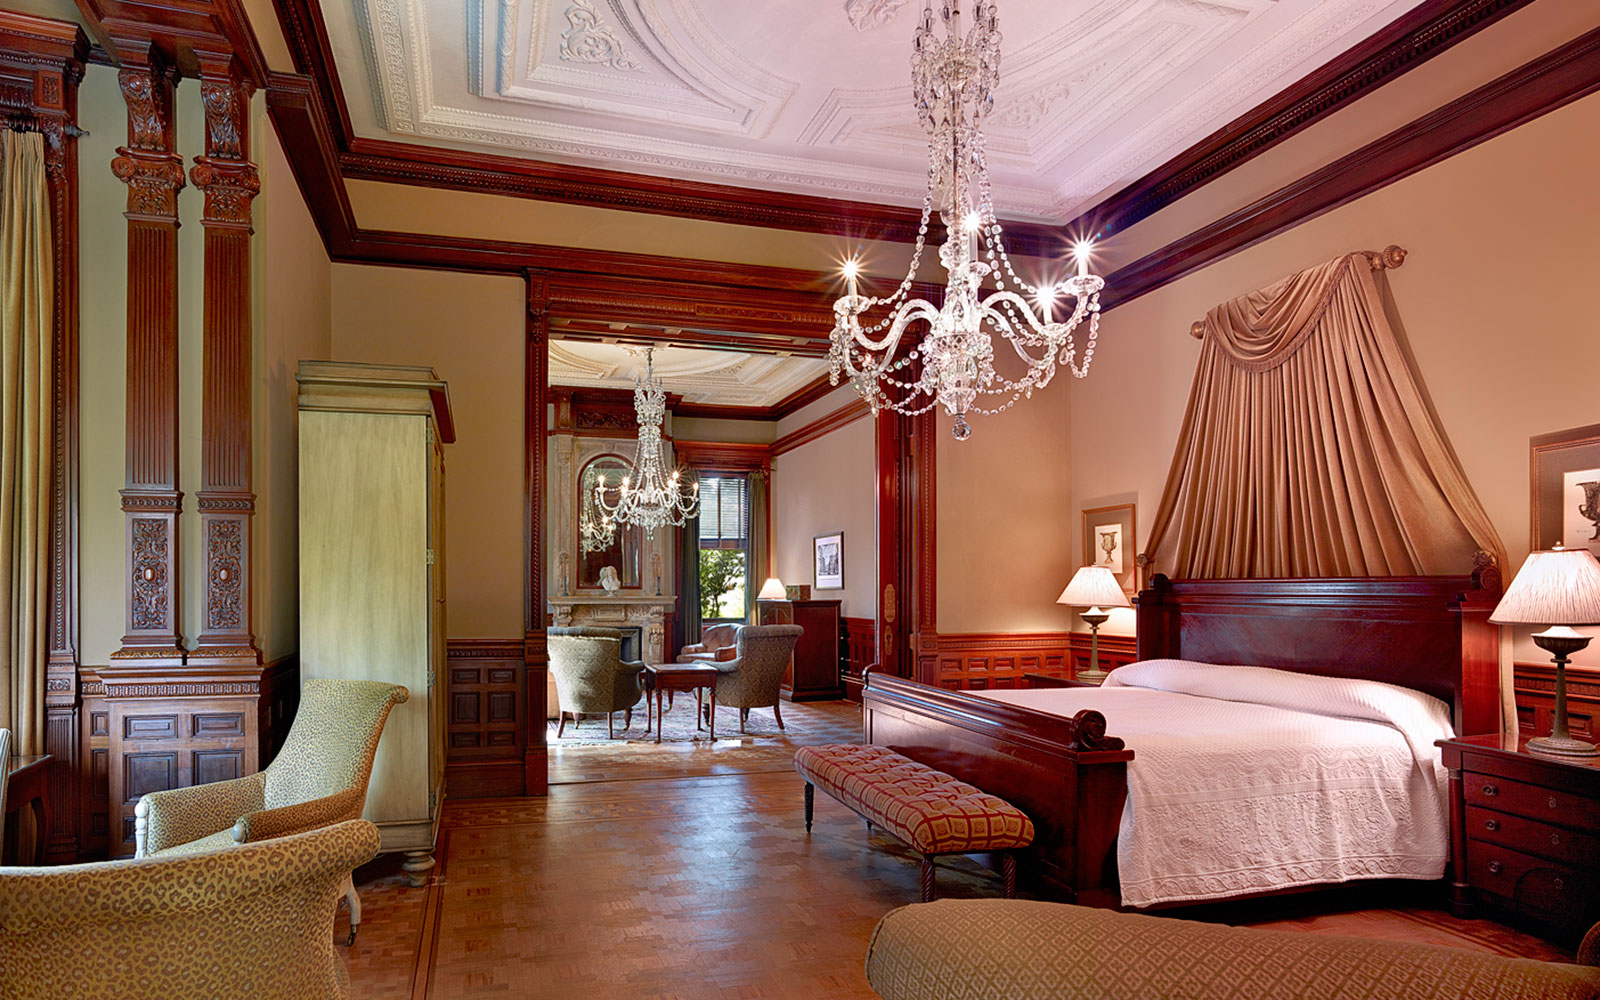 World's Top 50 Hotels: Wentworth Mansion, Charleston, South Carolina